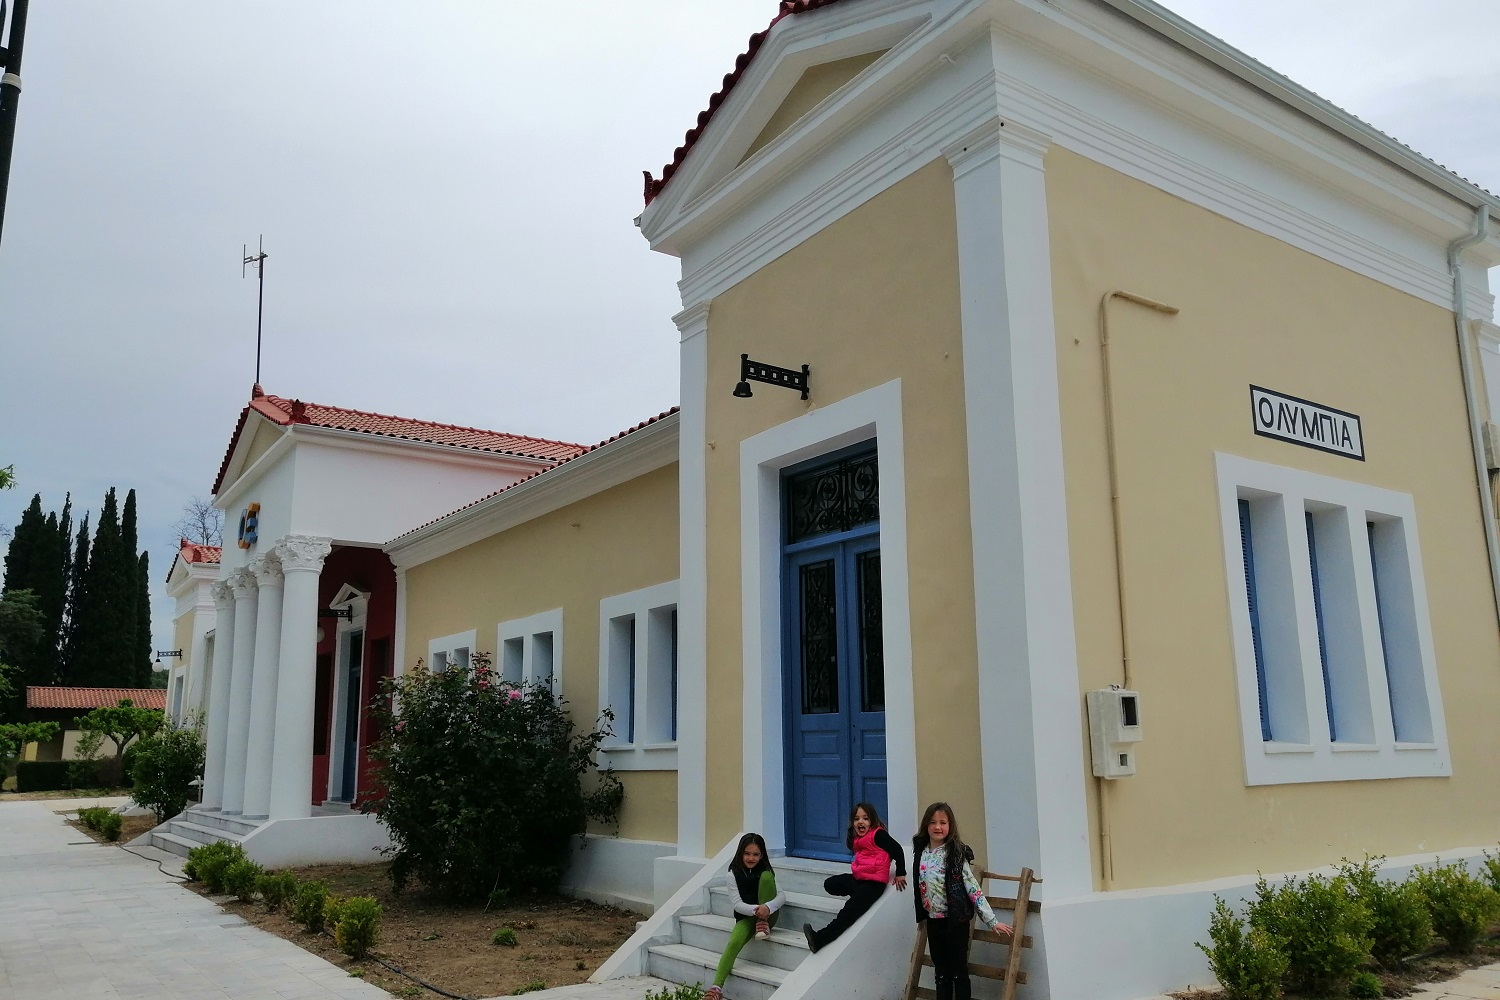 ancient olympia kids train station